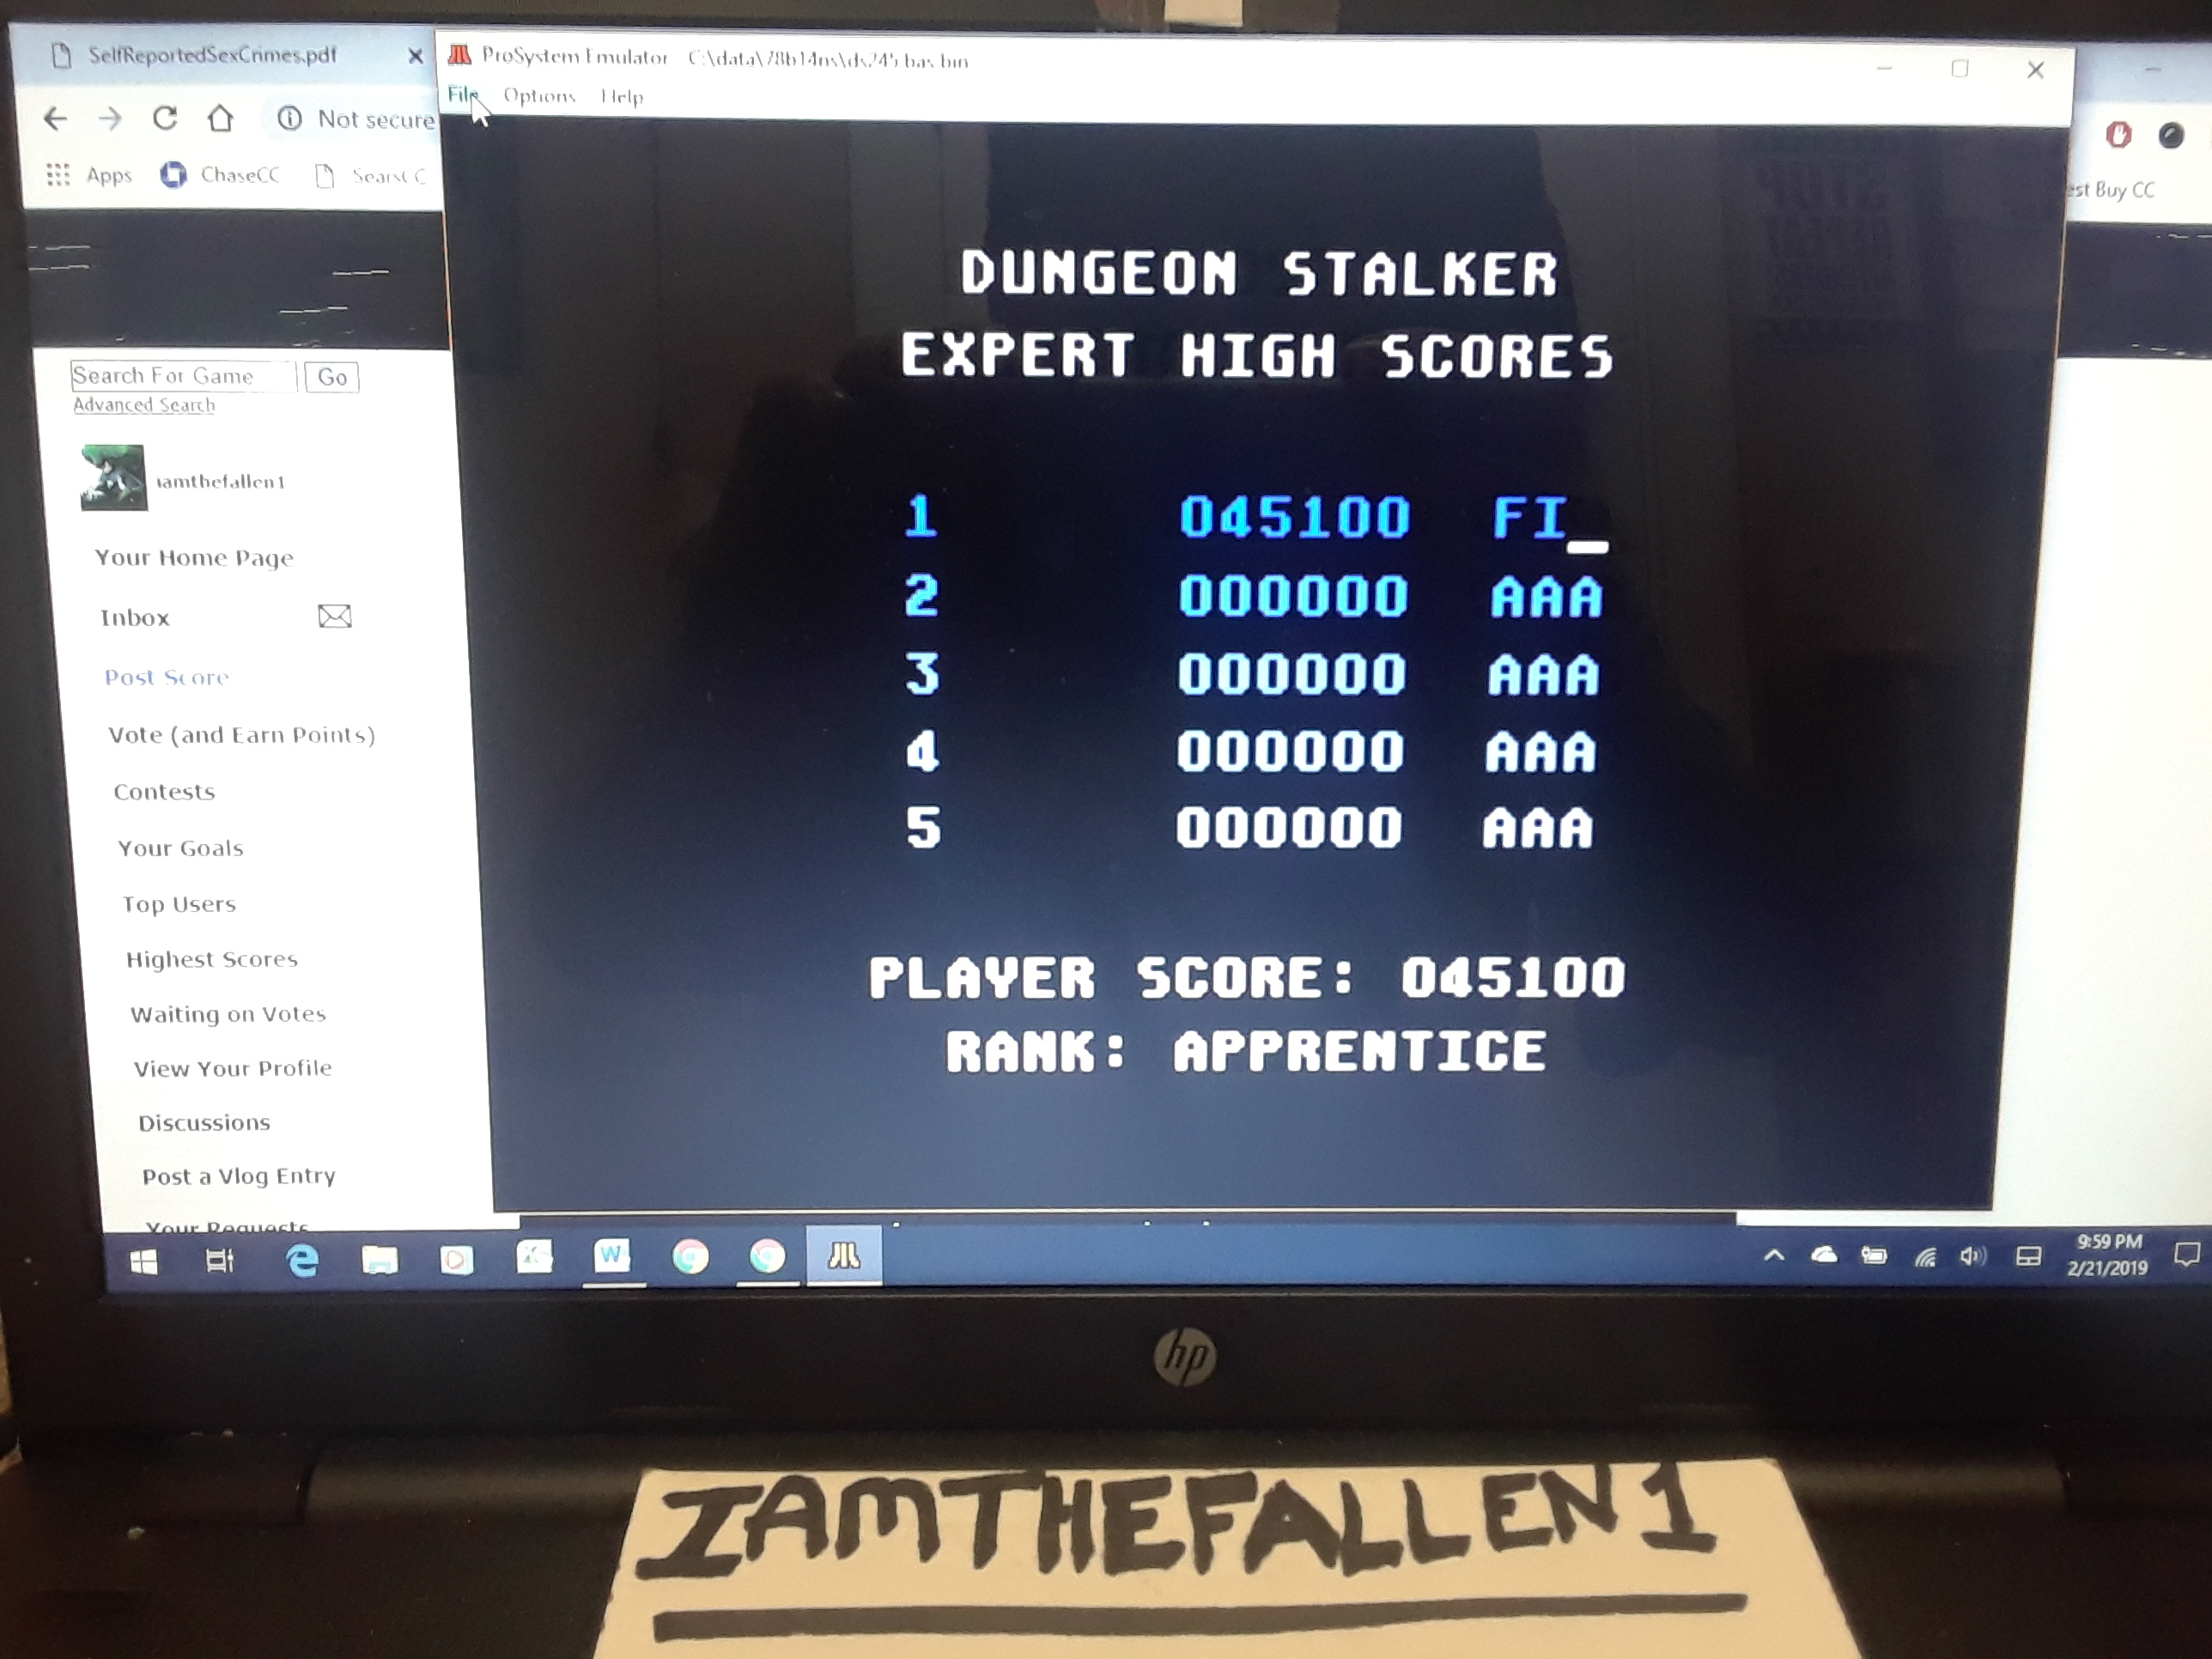 iamthefallen1: Dungeon Stalker [Expert] (Atari 7800 Emulated) 45,100 points on 2019-02-21 21:01:11